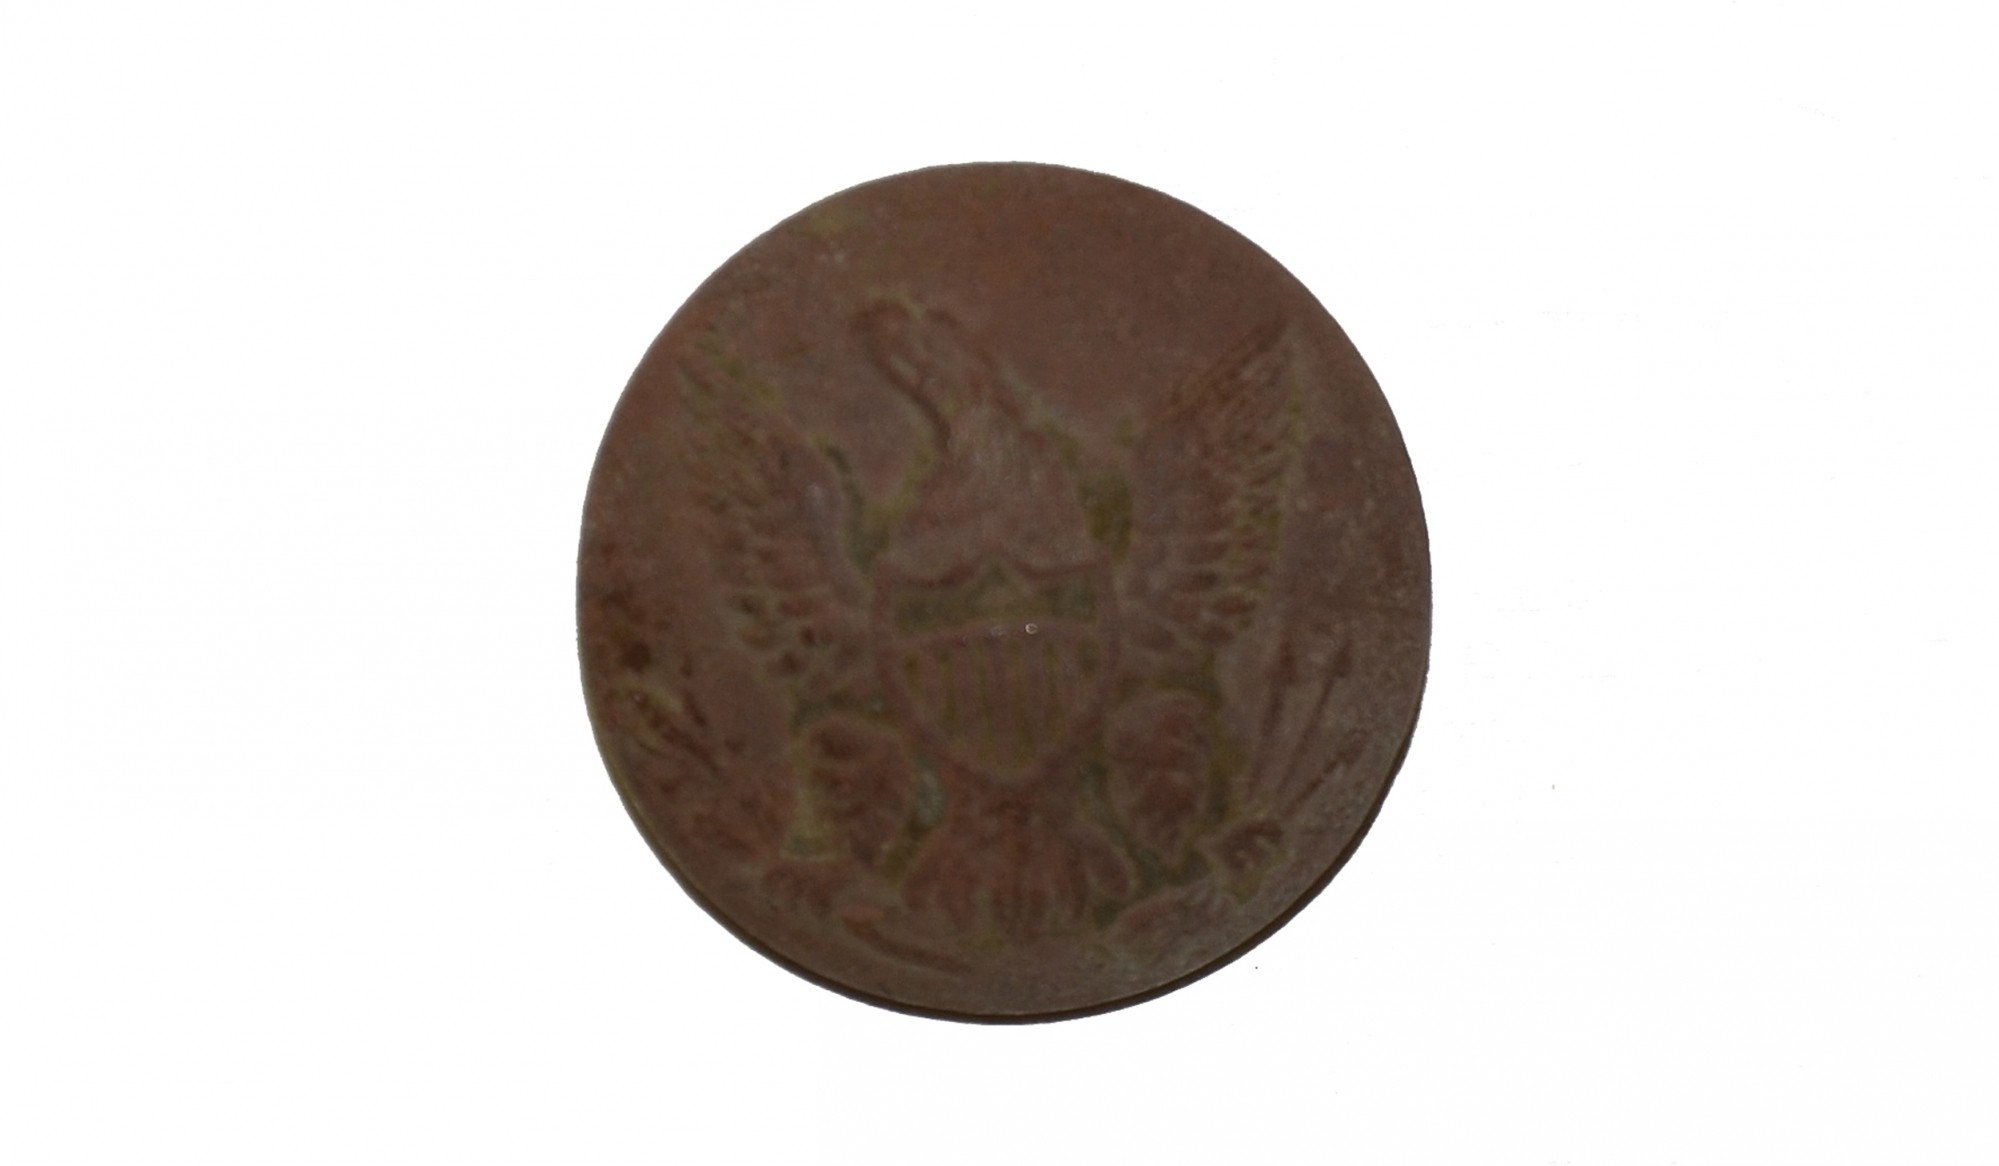 US GENERAL SERVICE EAGLE JACKET BUTTON, RECOVERED FROM KLINGEL FARM, GETTYSBURG